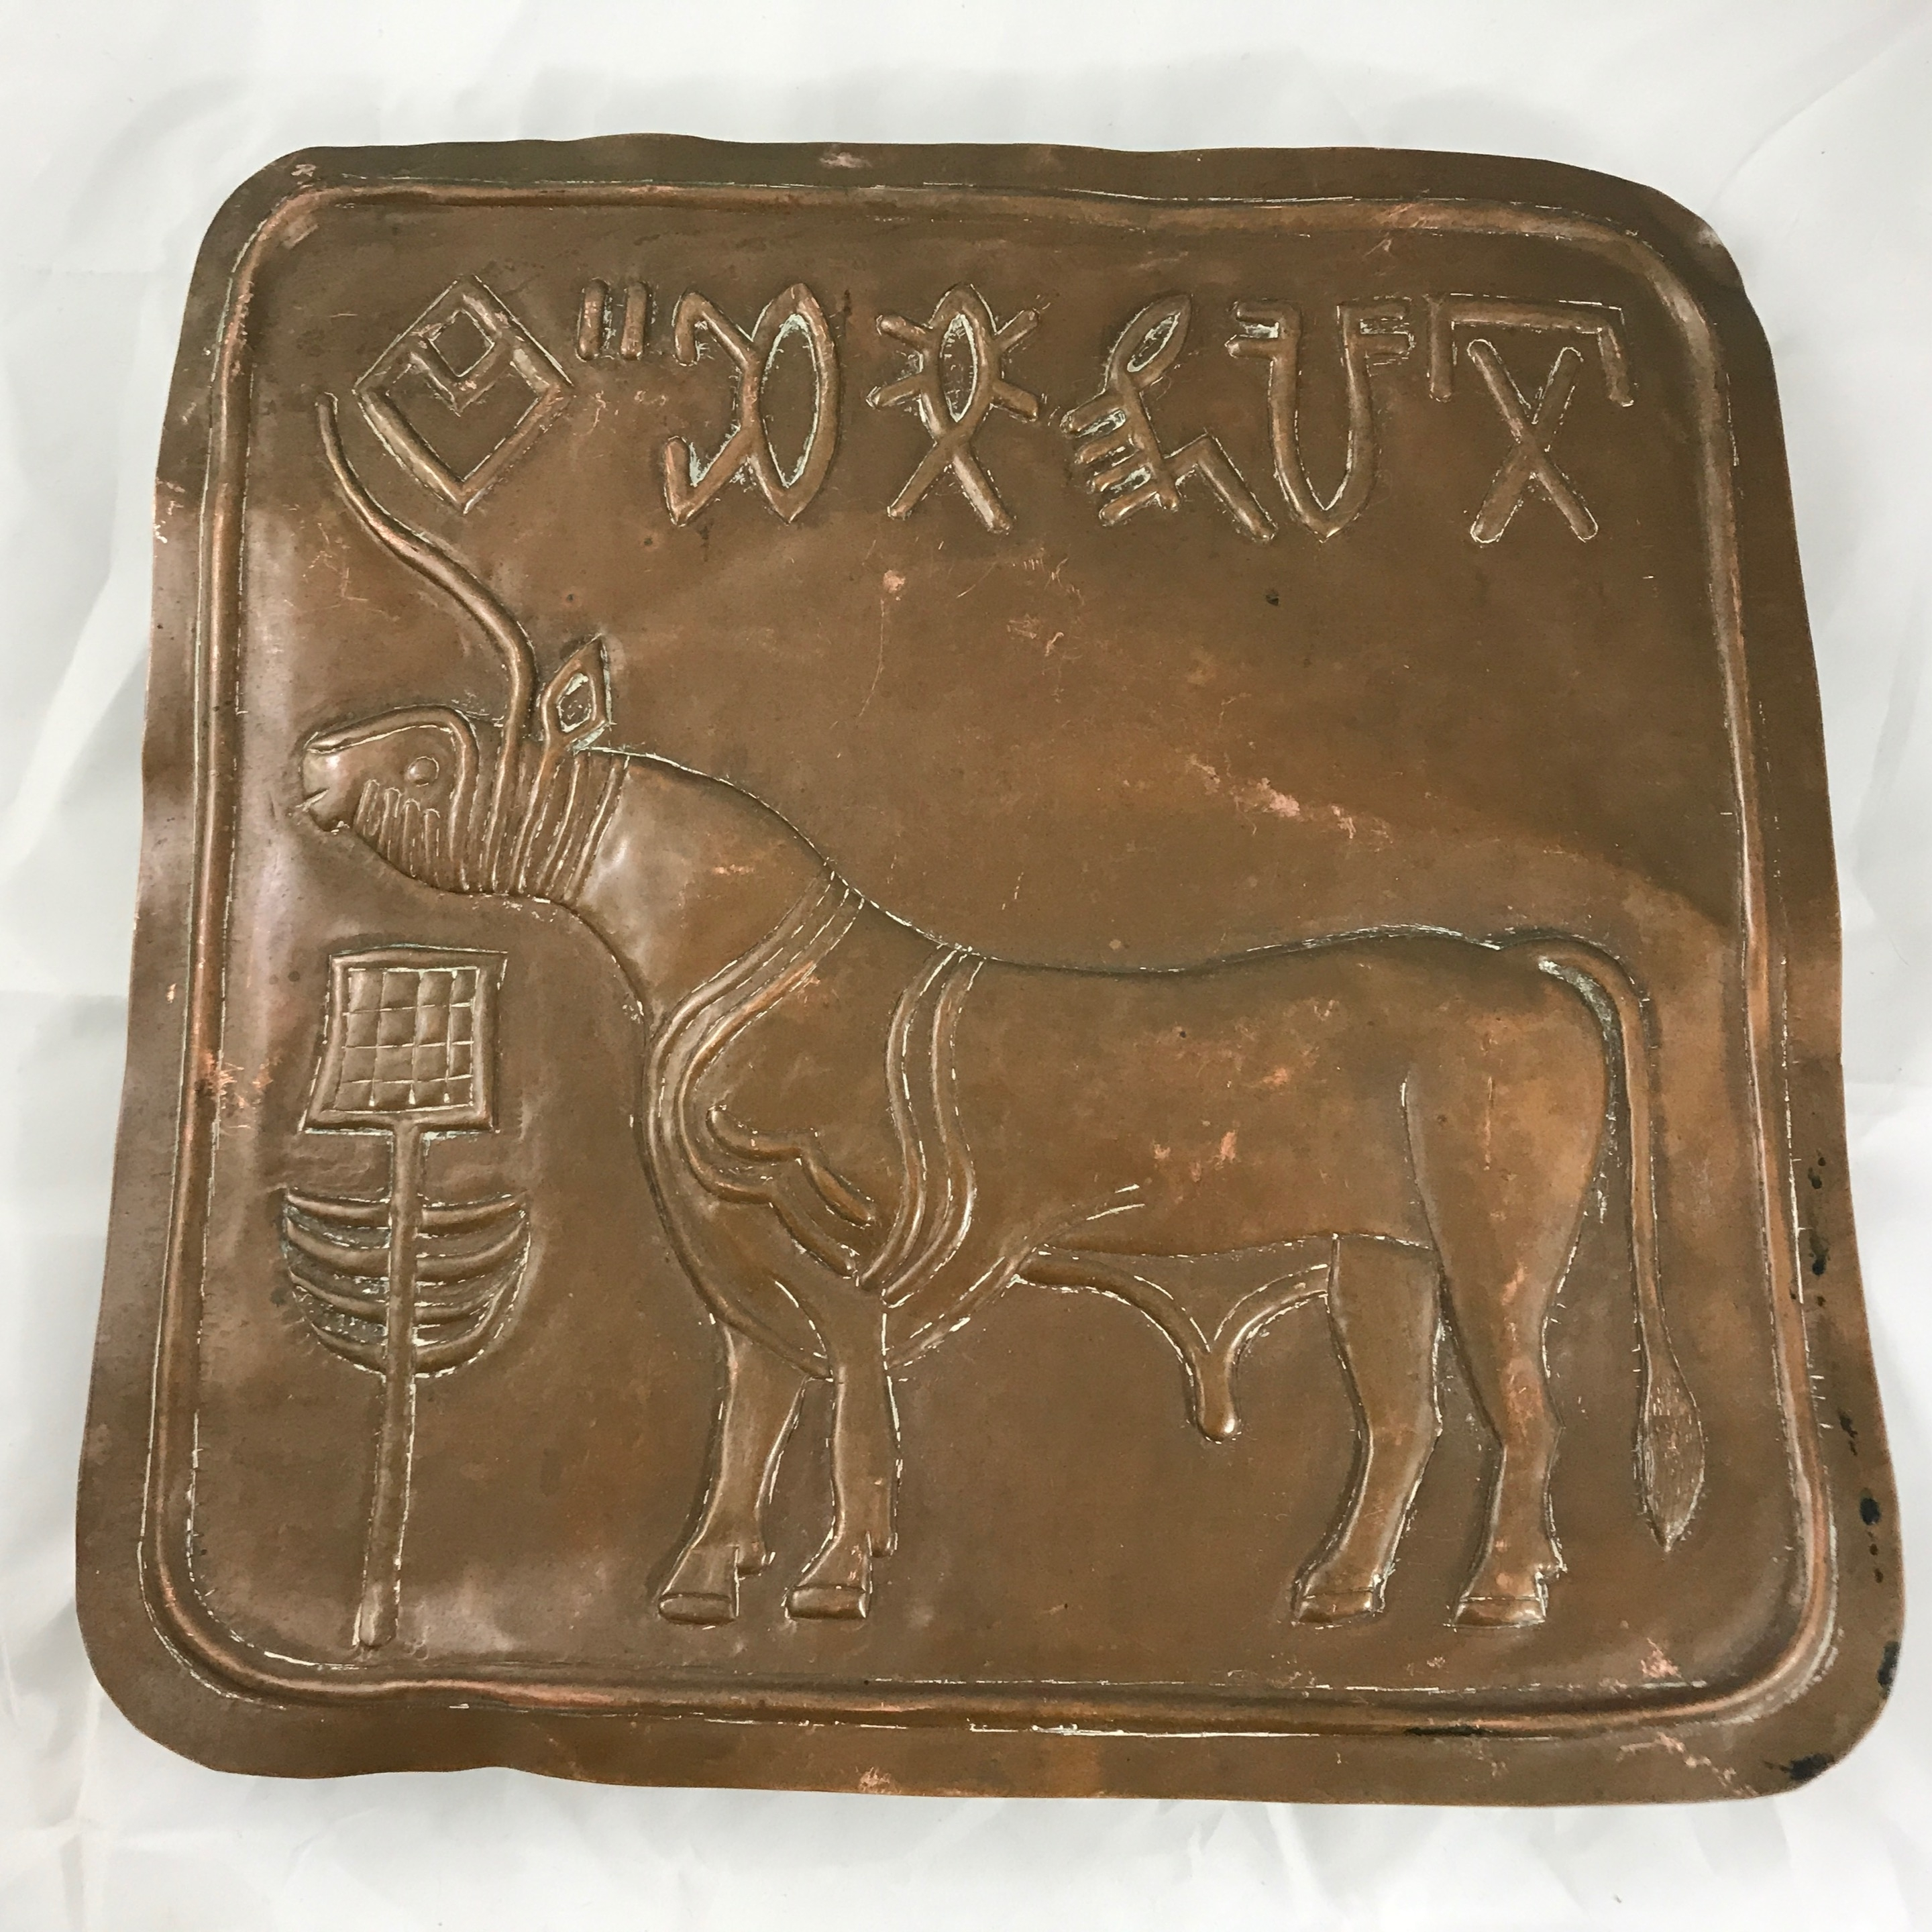 Ethnographic Copper Wall Art – Wild Things Antiques With Regard To Most Current Copper Wall Art (View 9 of 15)